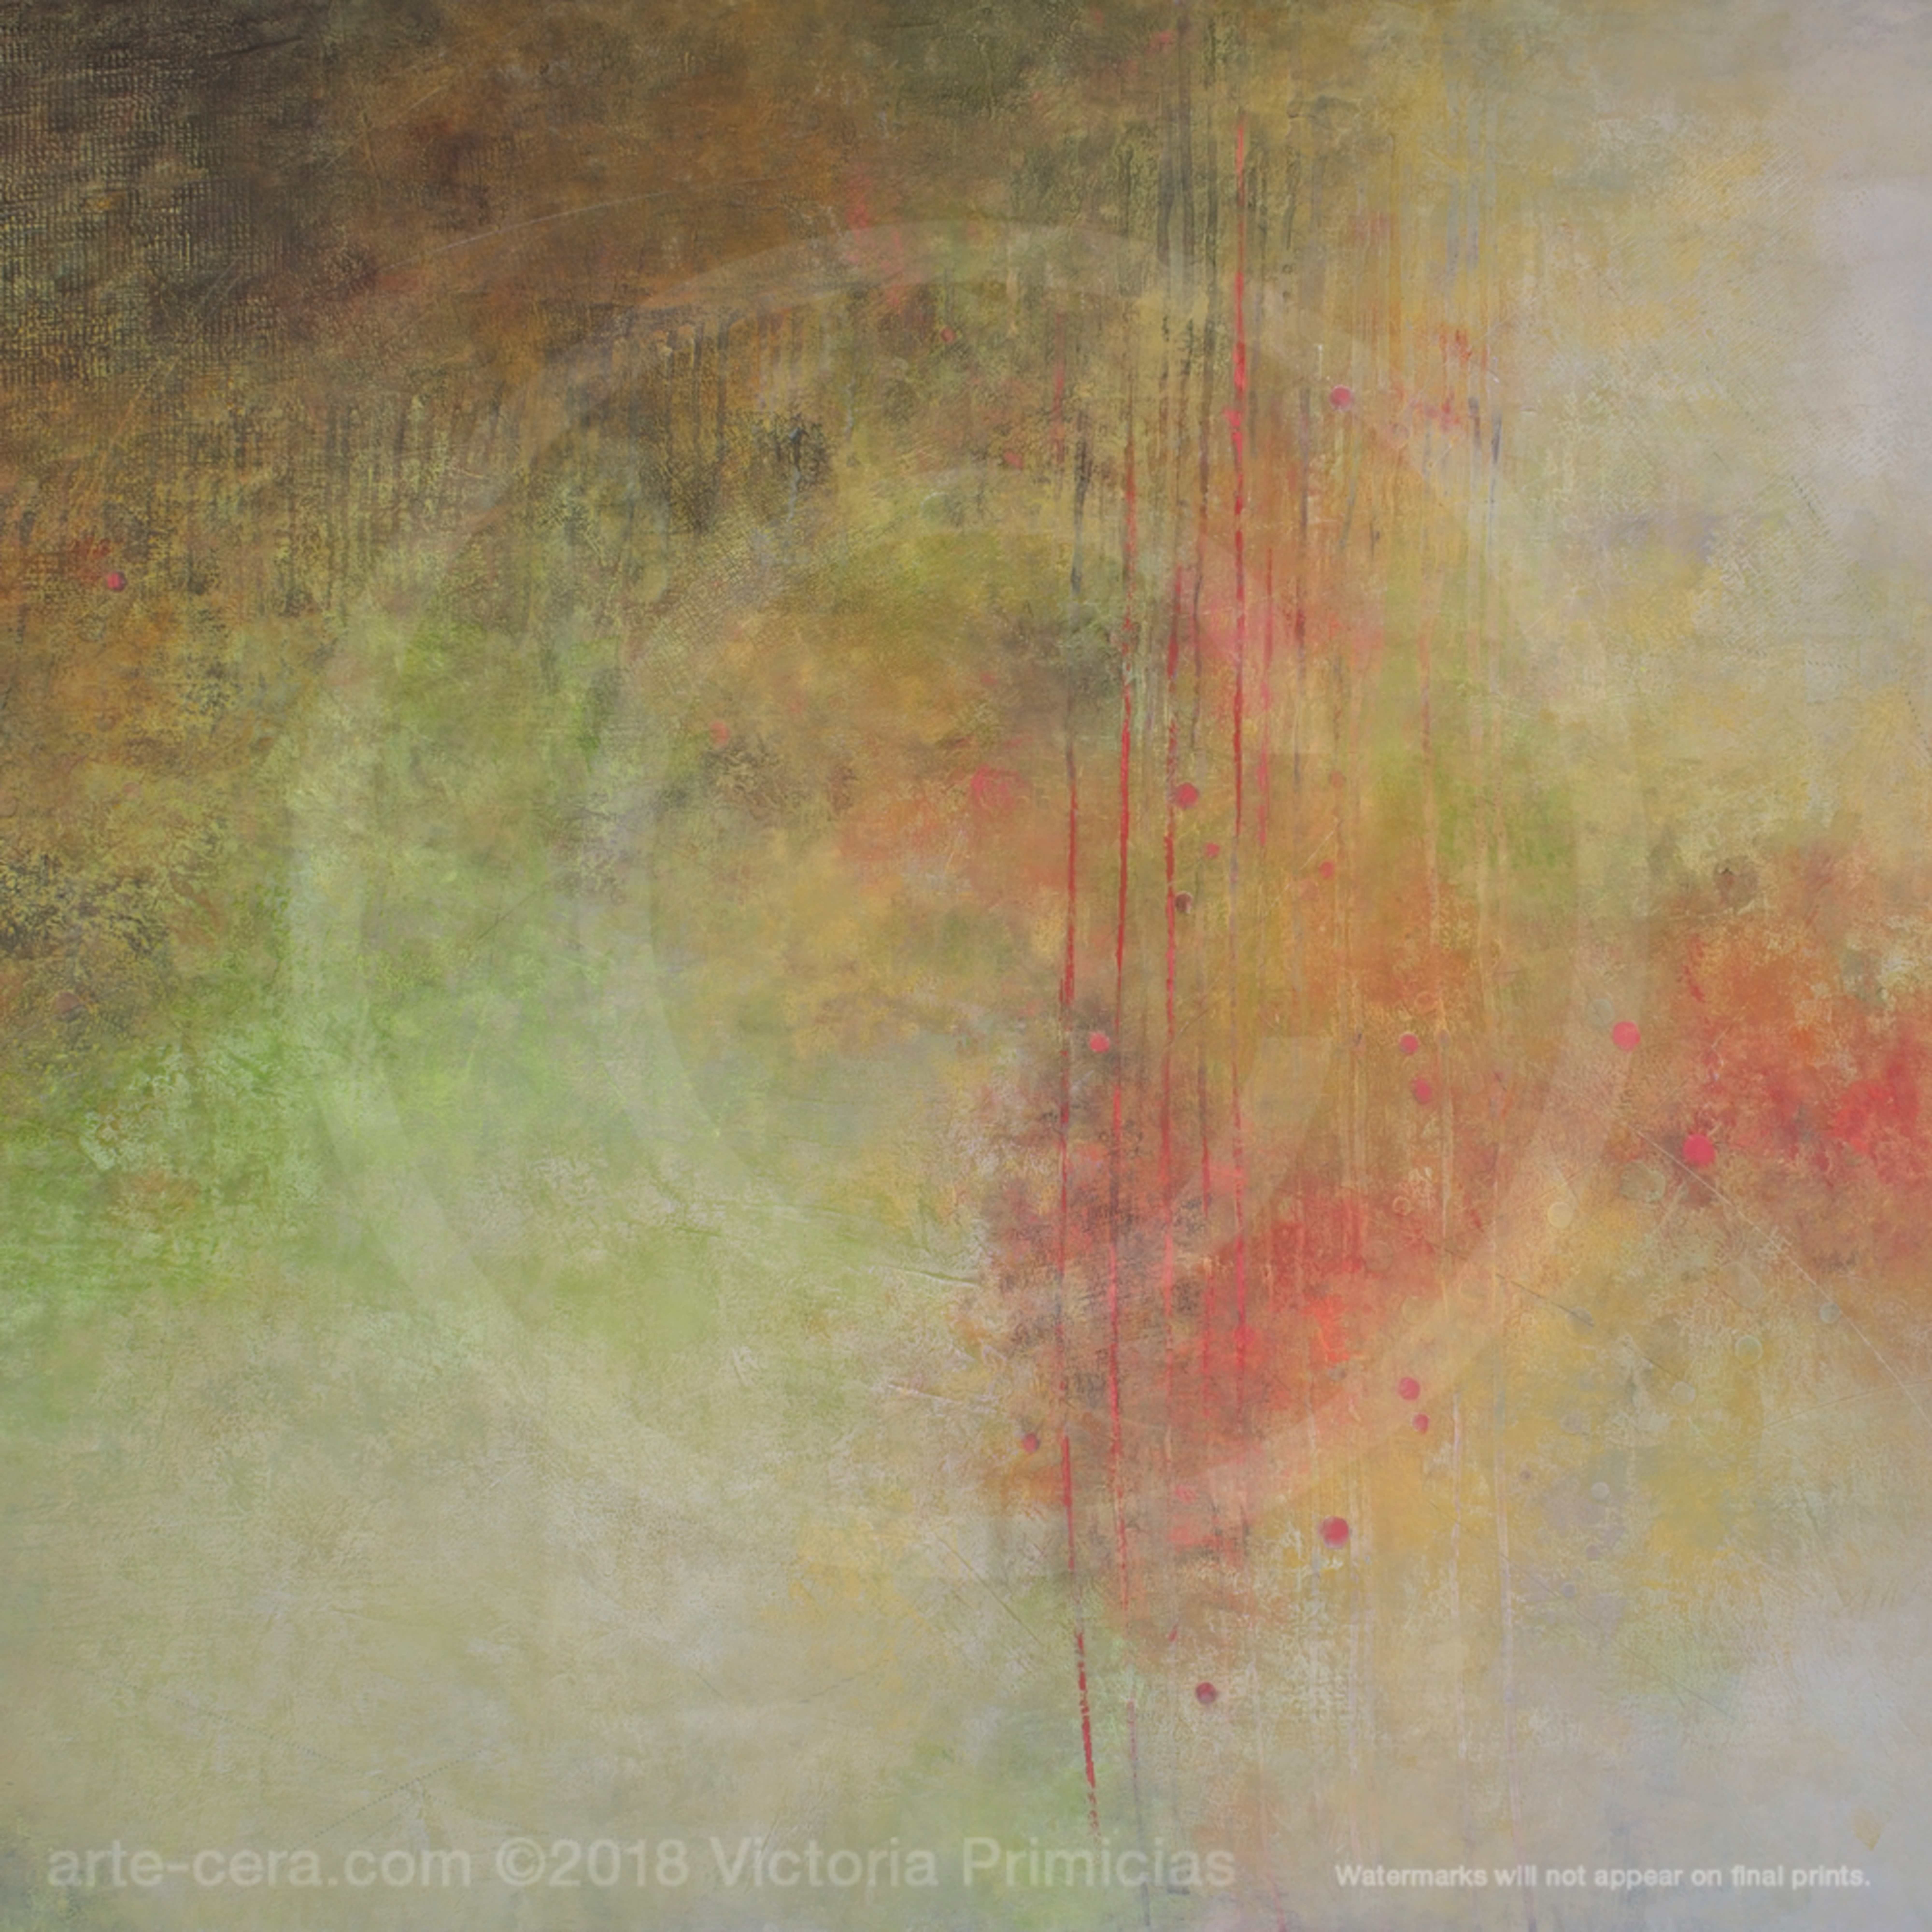 Modern abstract paintings loud whispers cxnq7n